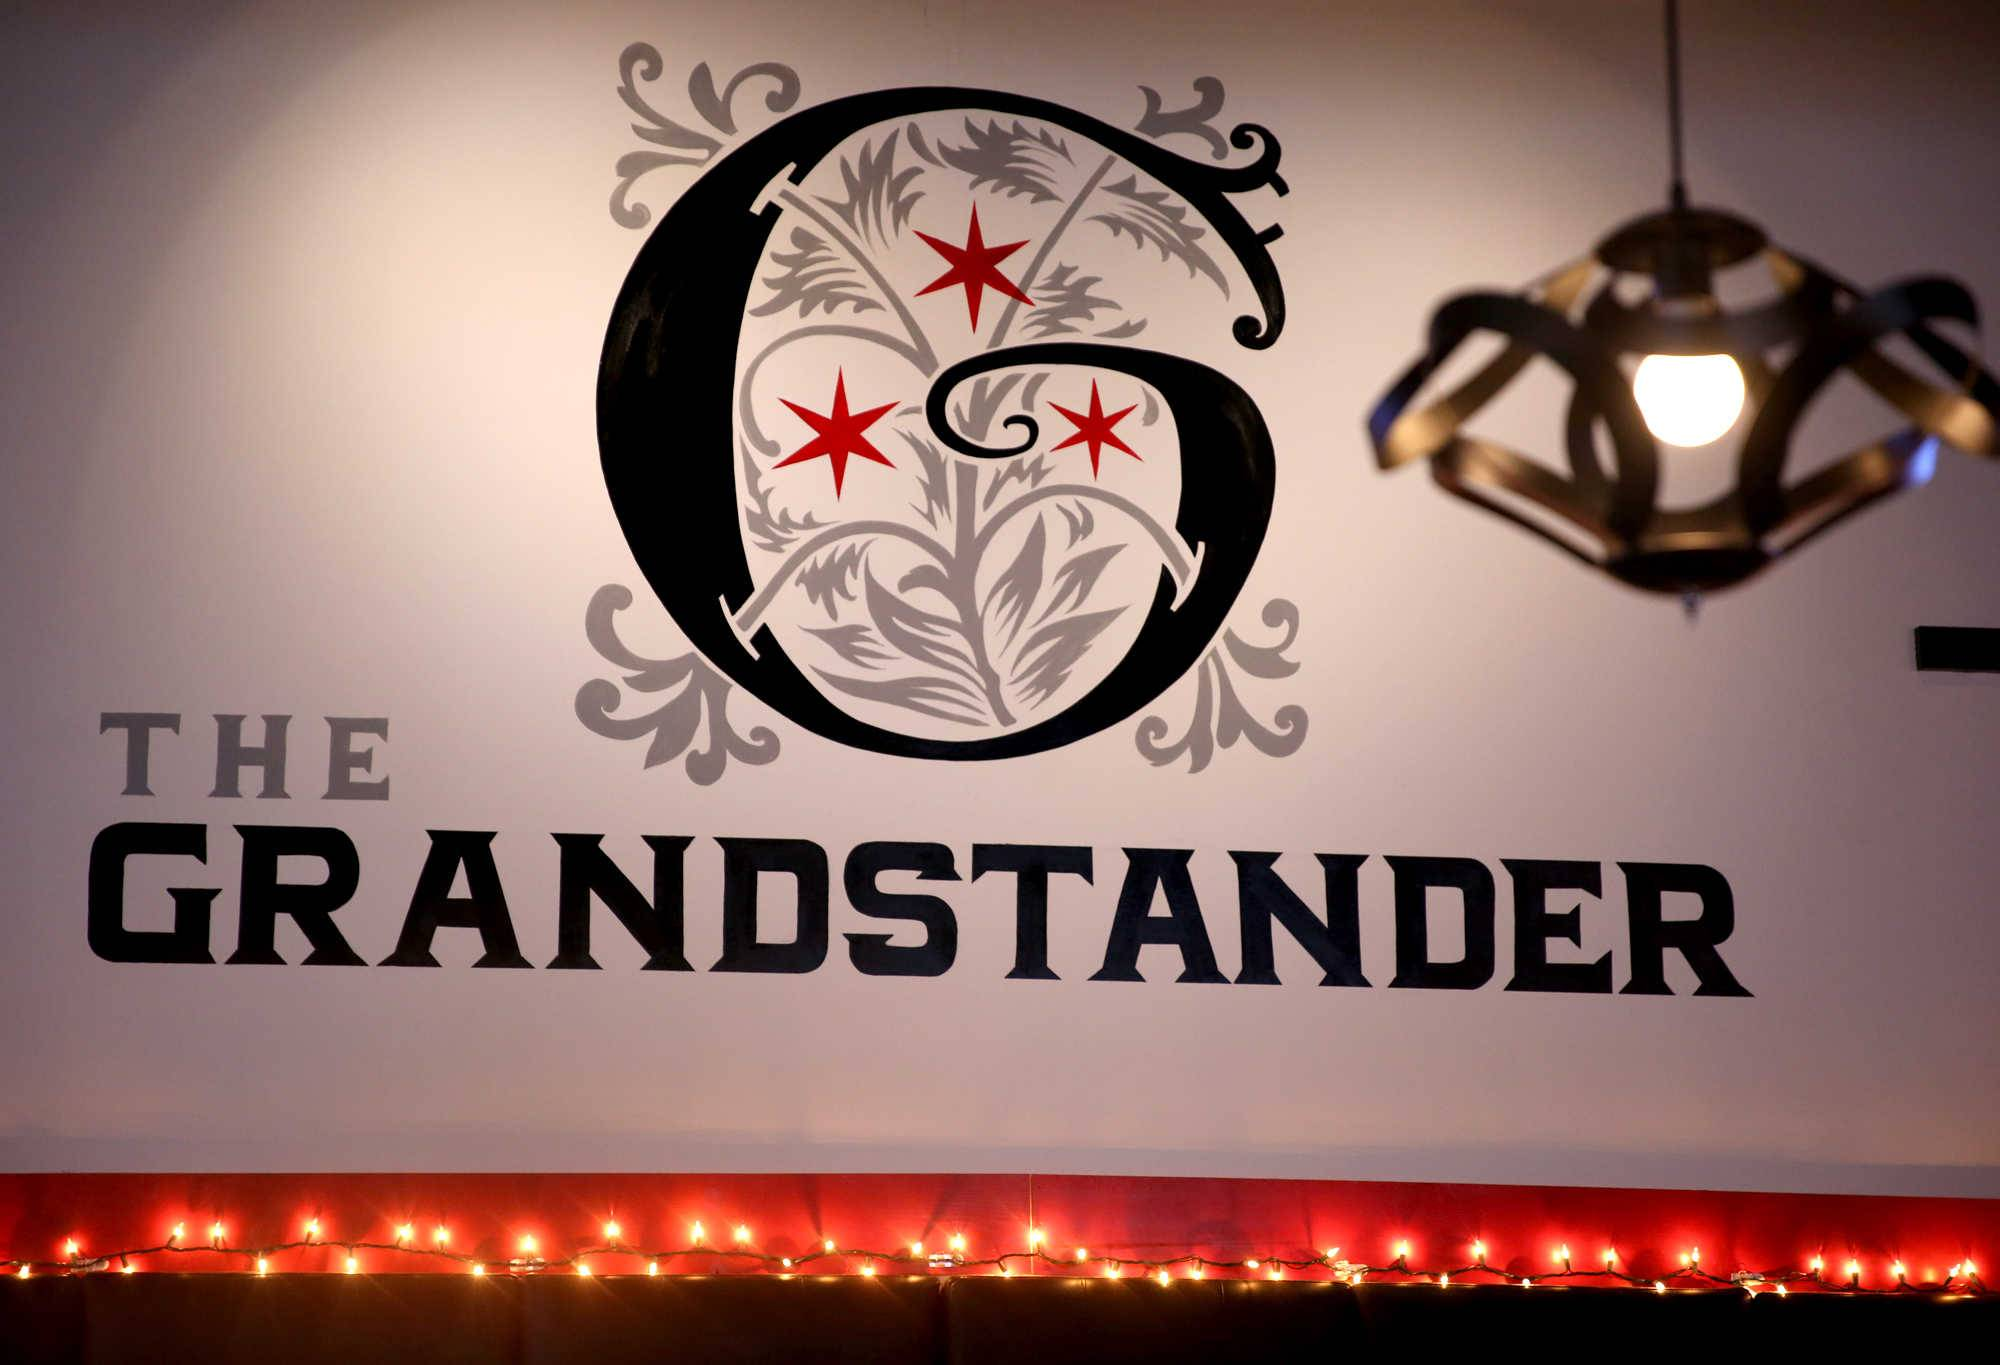 The Grandstander opened in Geneva in late August.